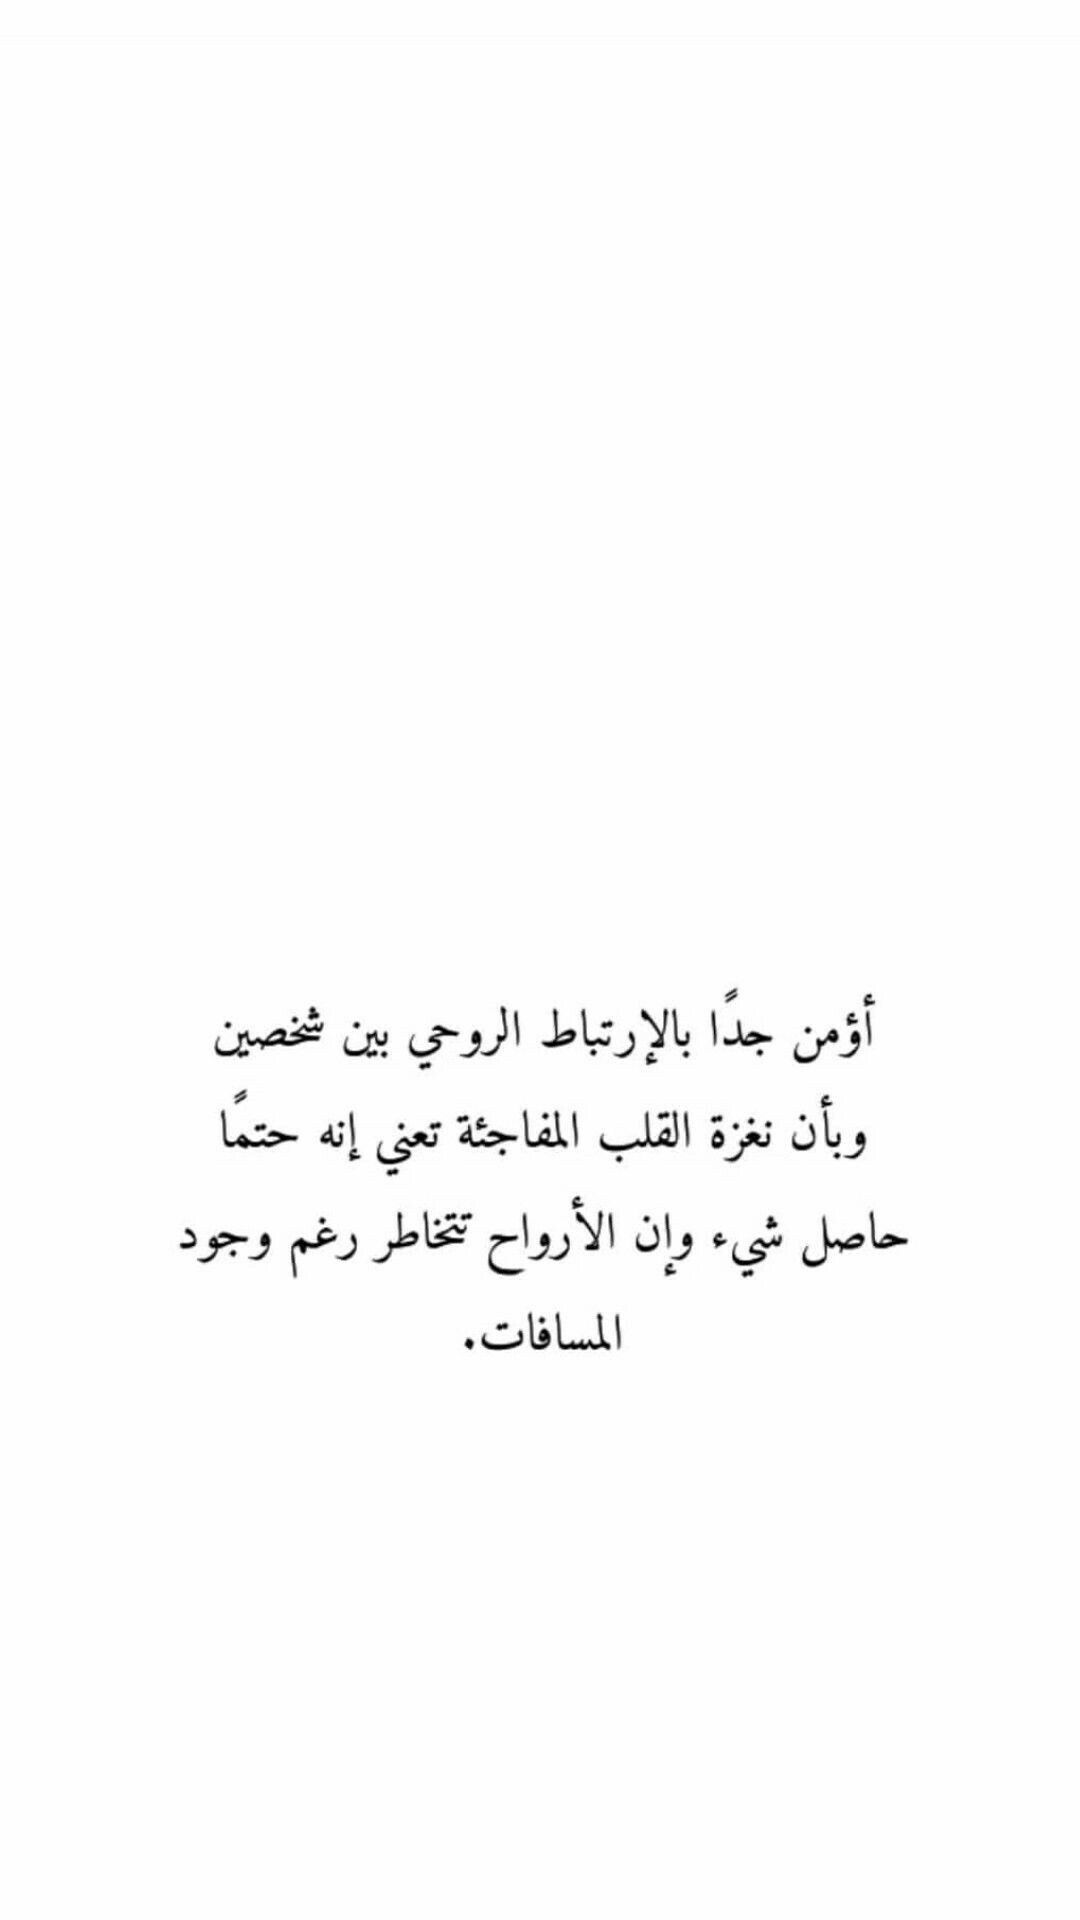 Pin by Shrouk Elghol on Arabic quotes | Arabic quotes